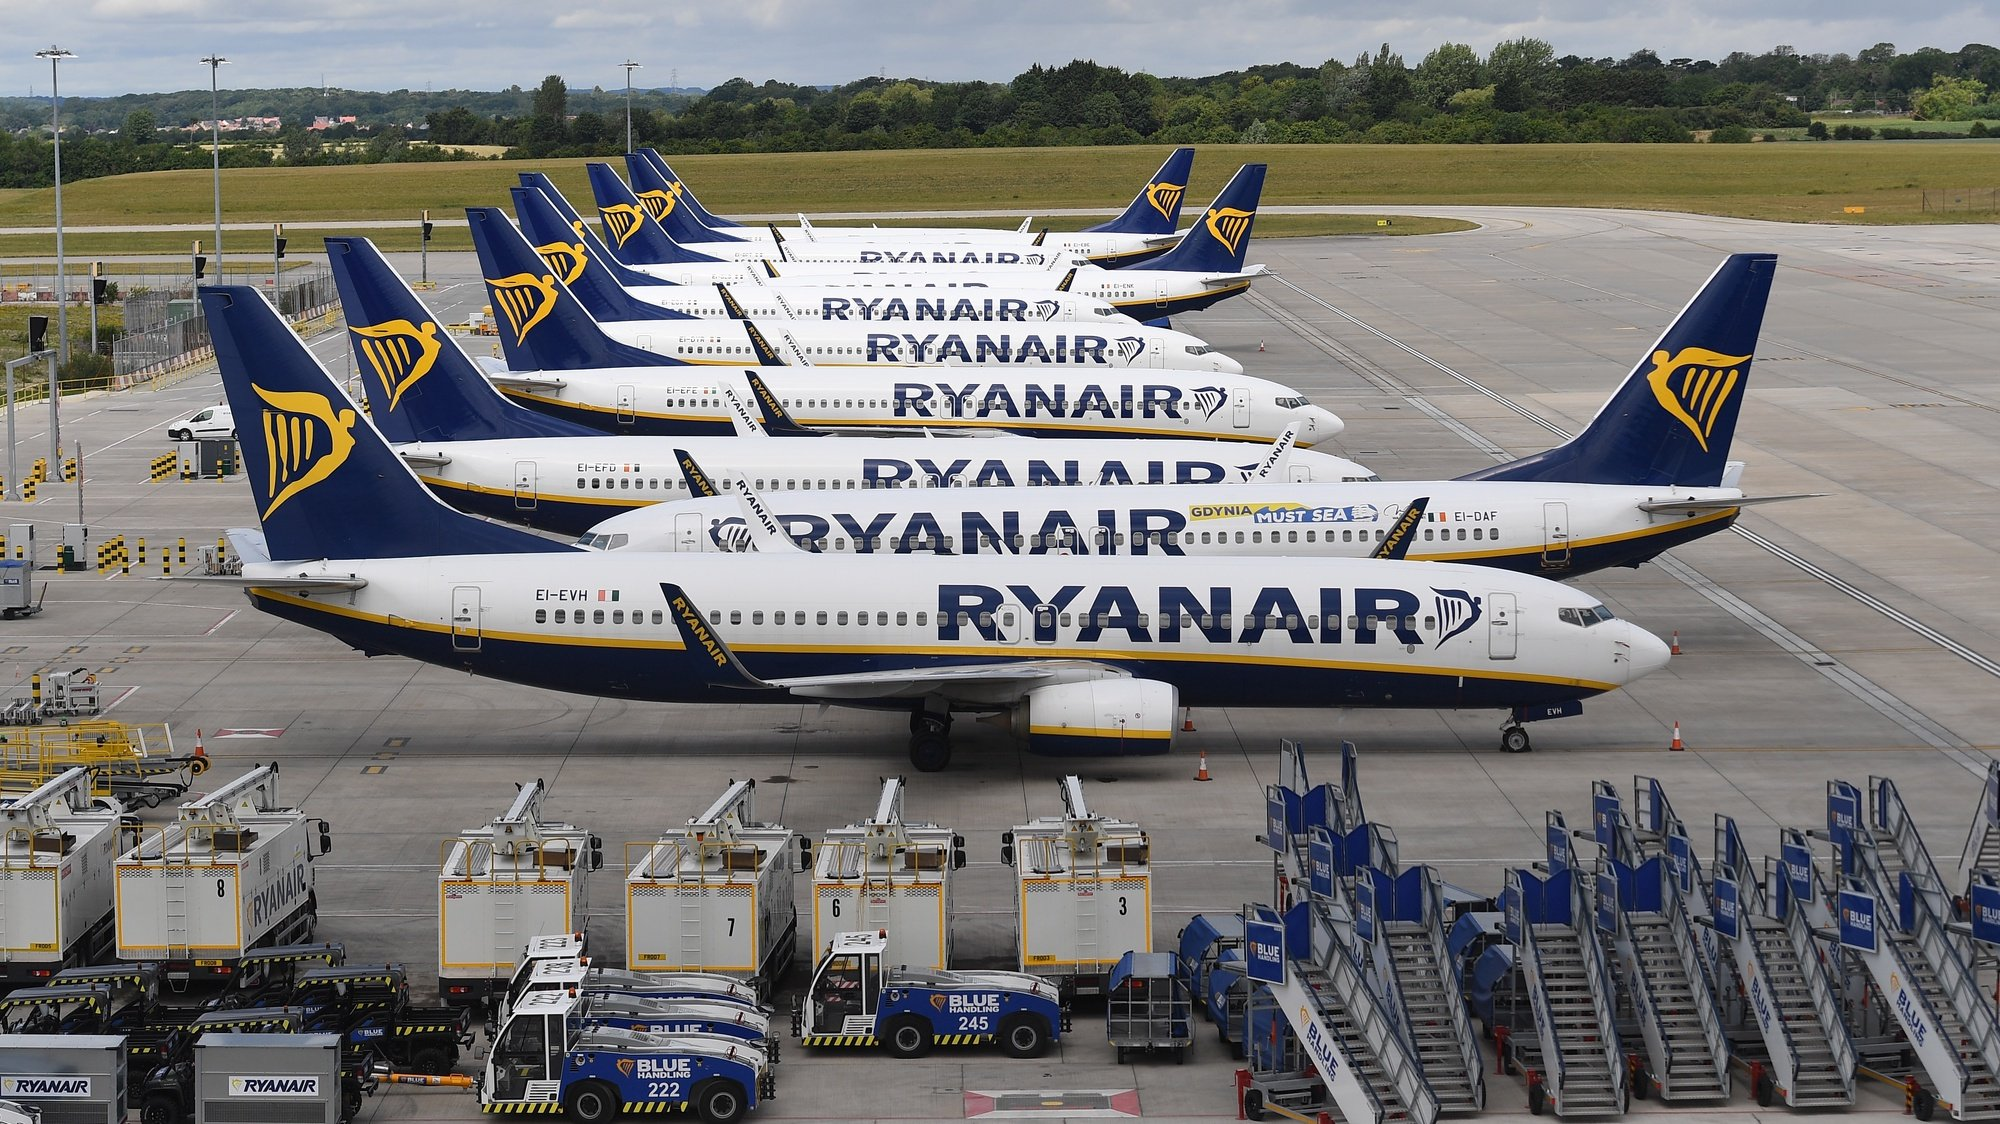 epa08520273 Ryanair aircraft at Stansted Airport in London, Britain, 01 July 2020. The UK government is set to announce that it is to form so called 'air bridges' with other countries so that people can go on holiday this summer. The global travel industry has been hit hard by four months of lockdown. Countries around the world are taking increased measures to stem the widespread of the SARS-CoV-2 coronavirus which causes the Covid-19 disease.  EPA/ANDY RAIN